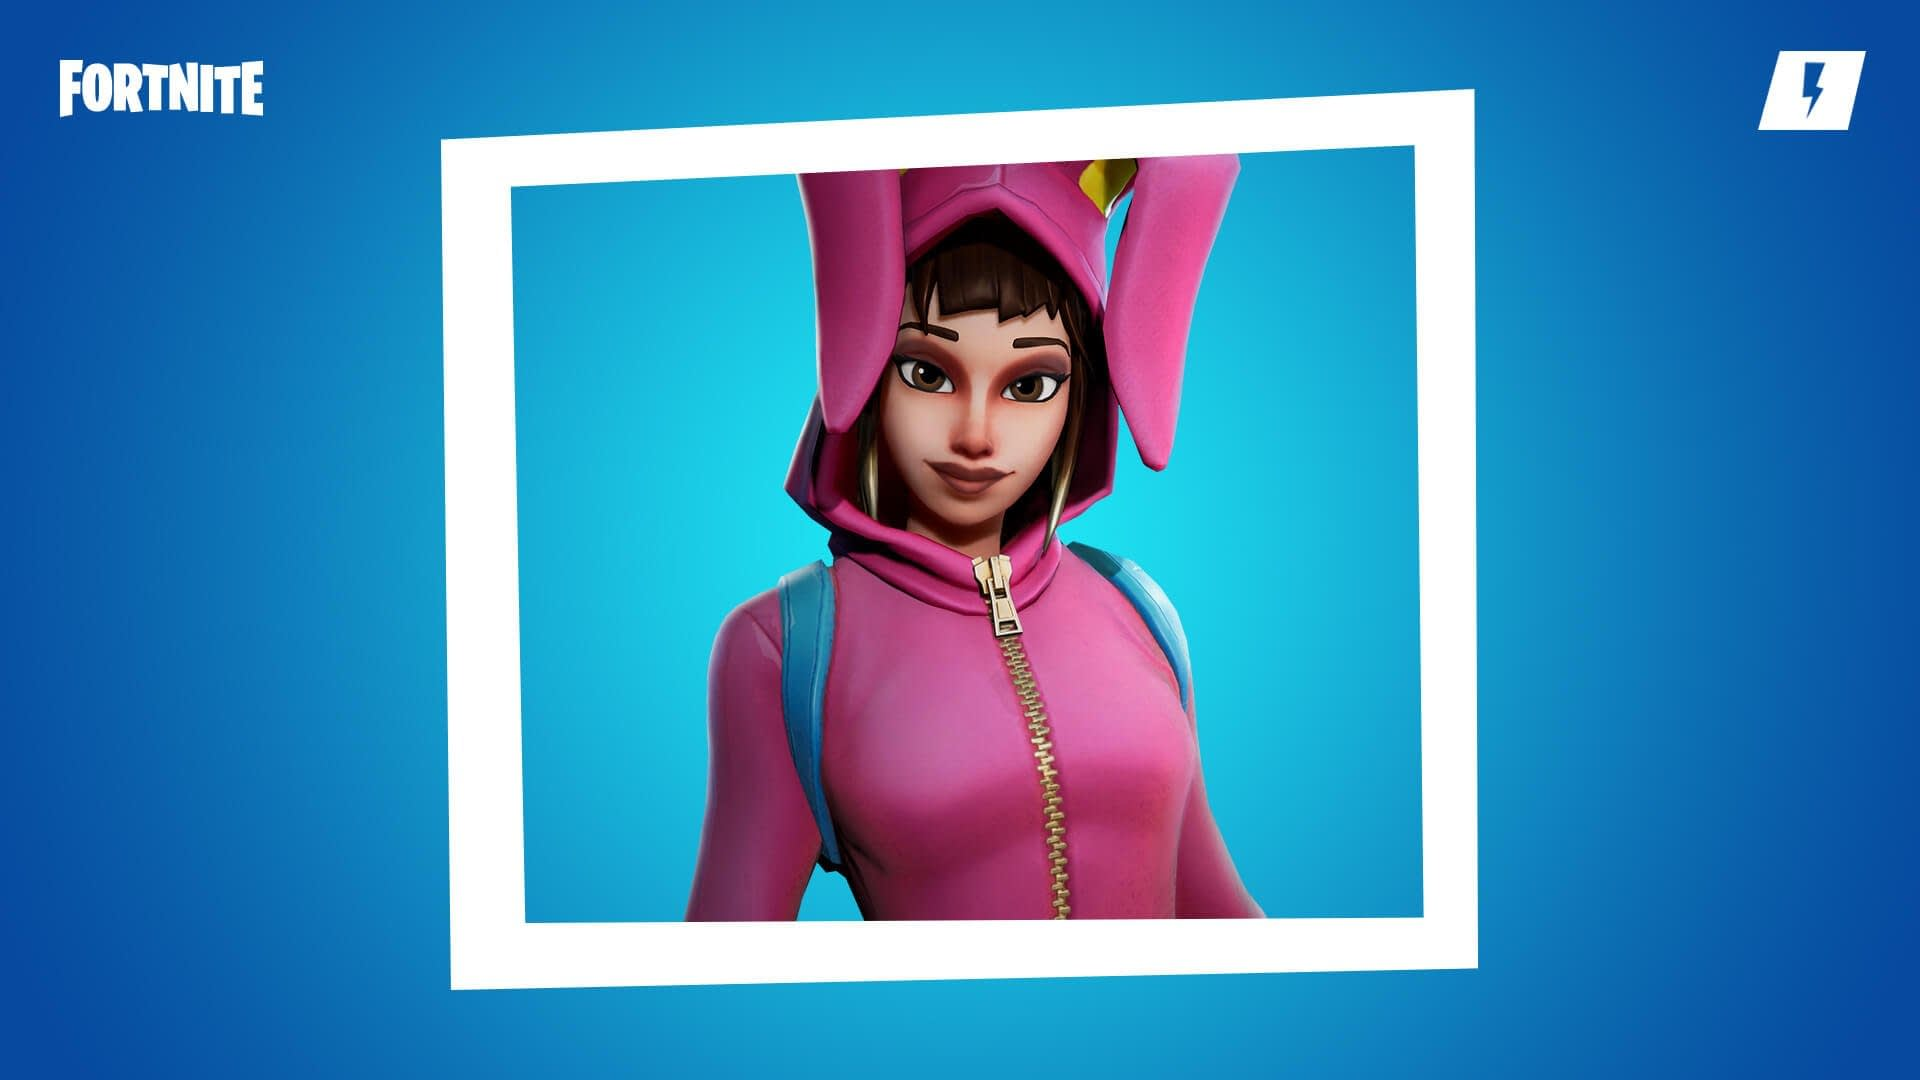 Fortnite: Update 12.30 - New items and fixed bugs